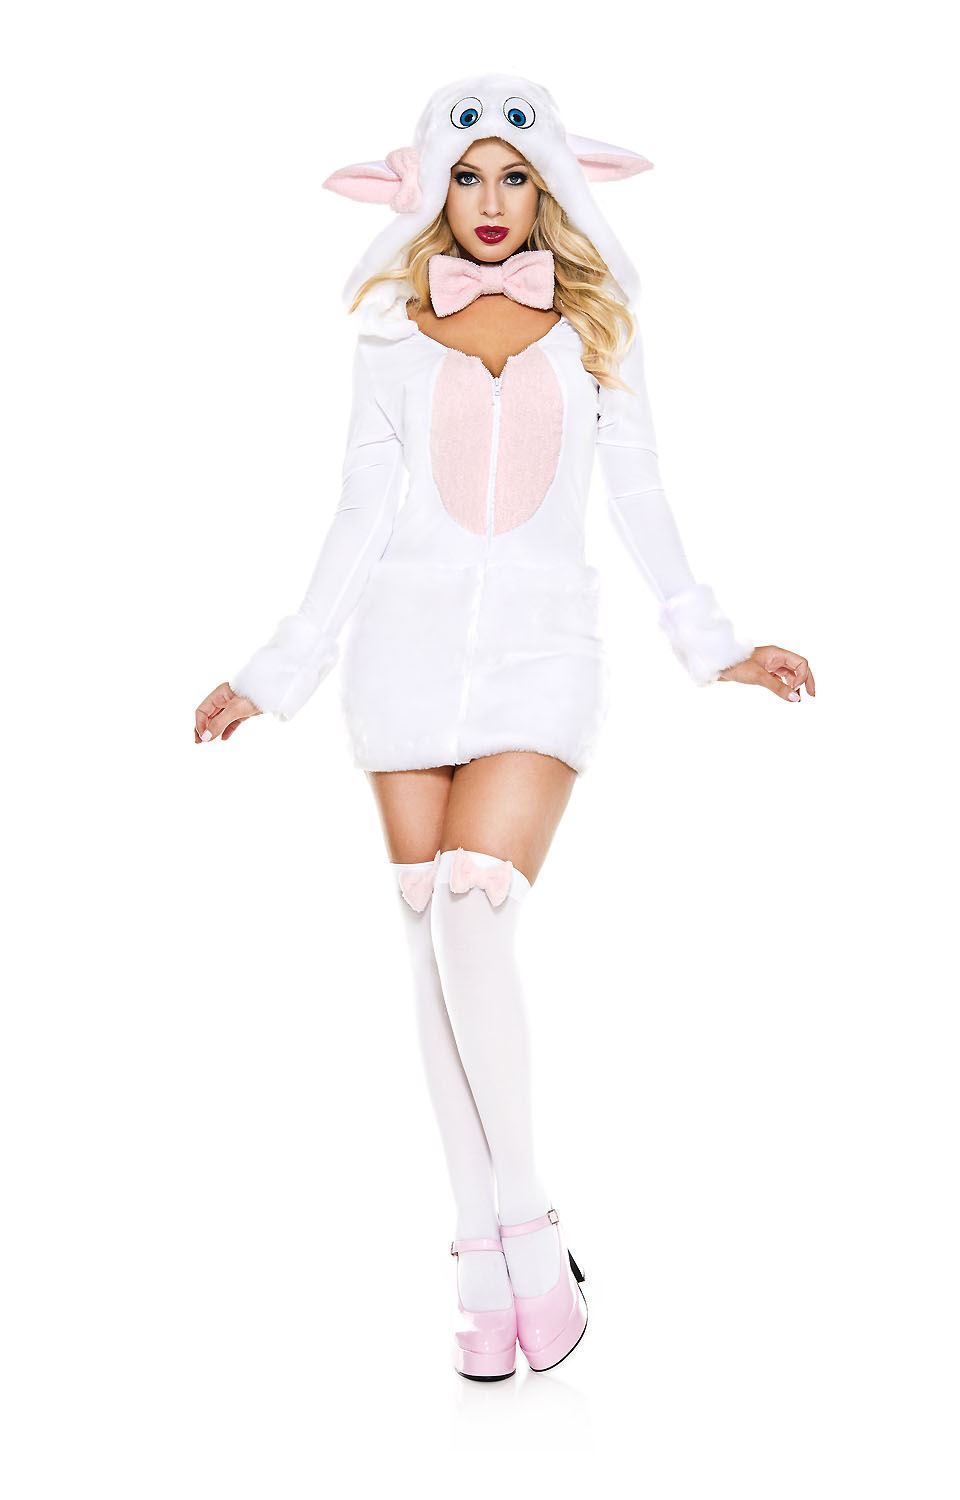 Adult Adorable Sheep Woman Costume ...  sc 1 st  The Costume Land & Adult Adorable Sheep Woman Costume | $41.99 | The Costume Land